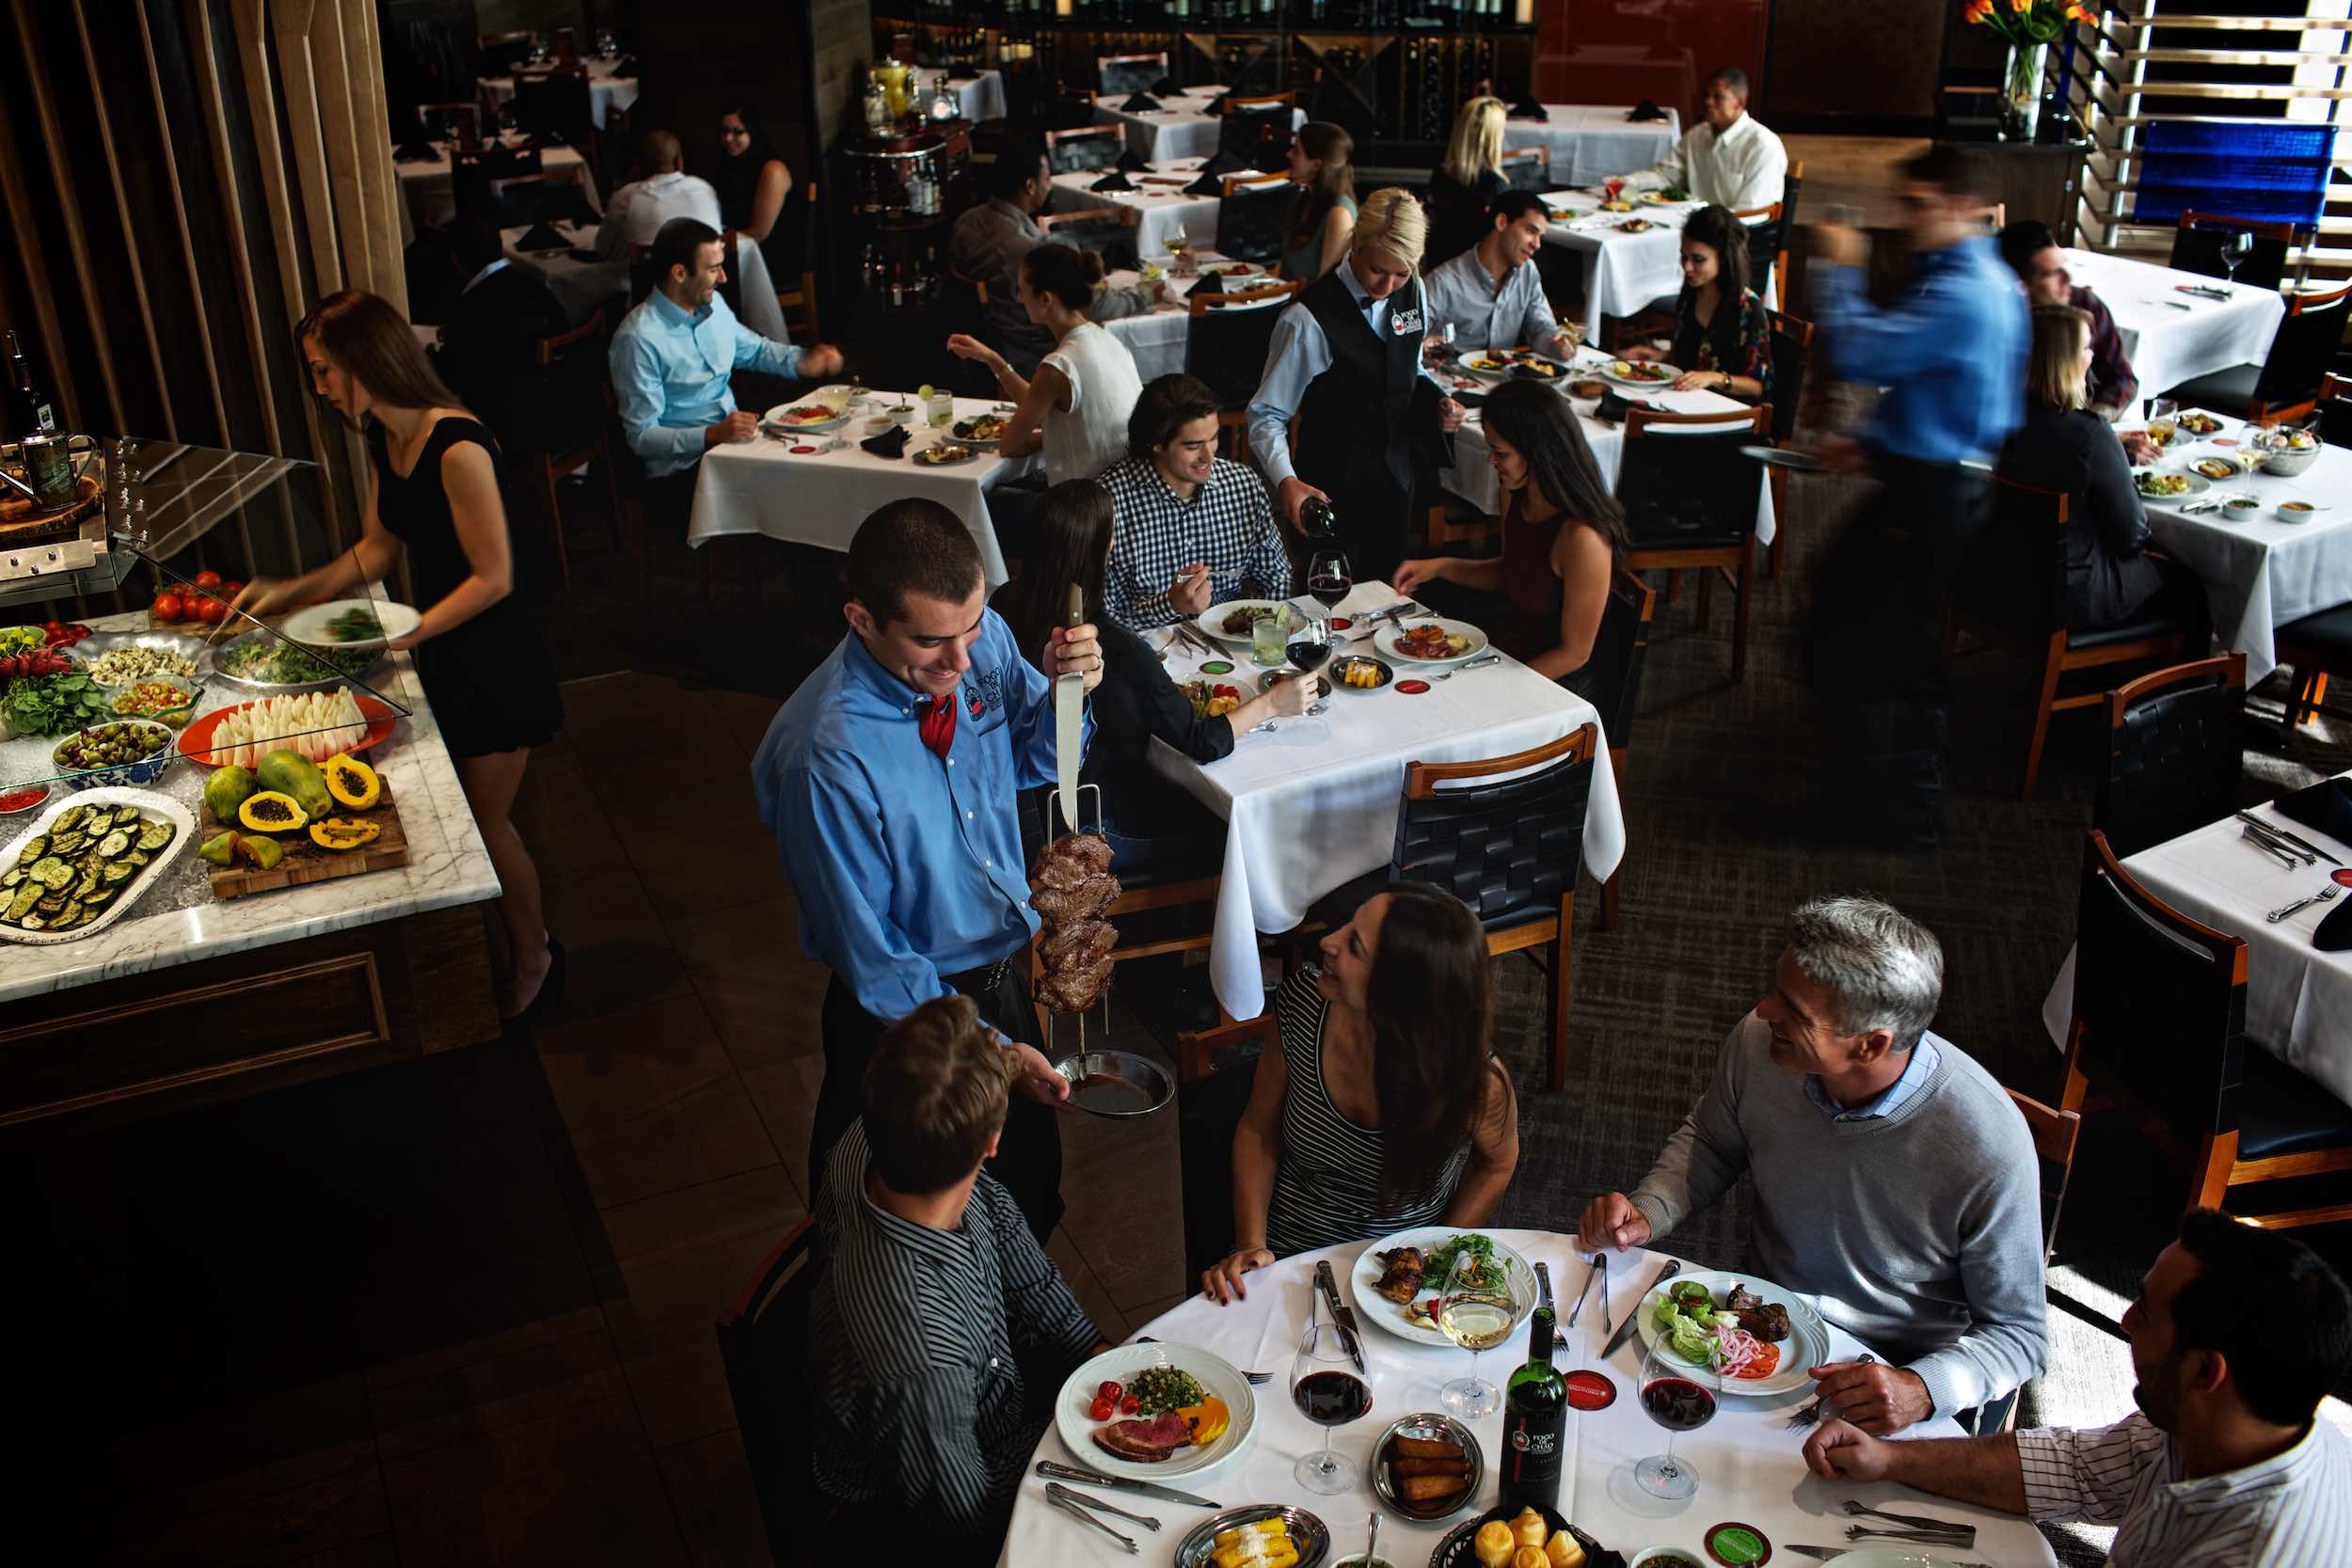 Jody Horton Photography - Guests dining at Fogo De Chao.